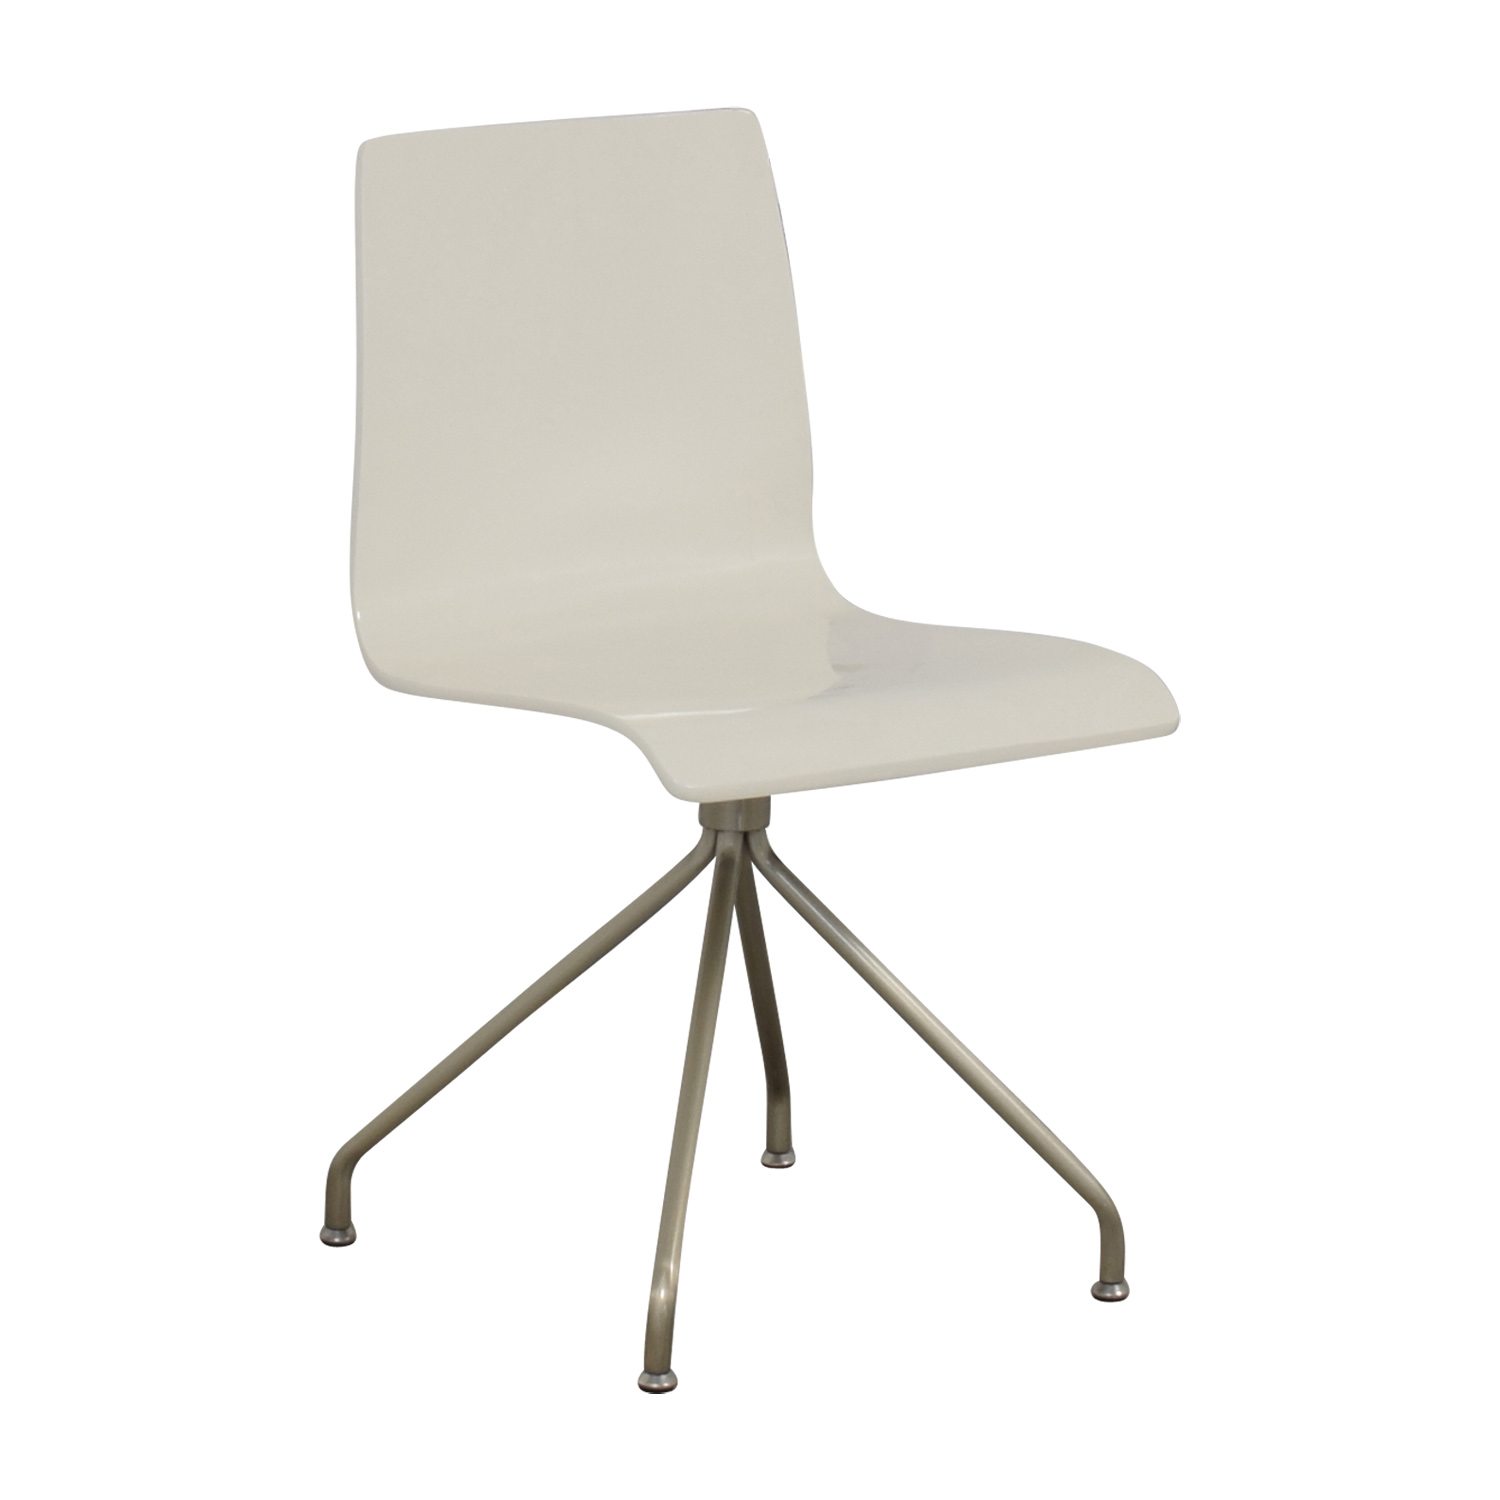 buy Crate & Barrel White Office Chair Crate & Barrel Chairs